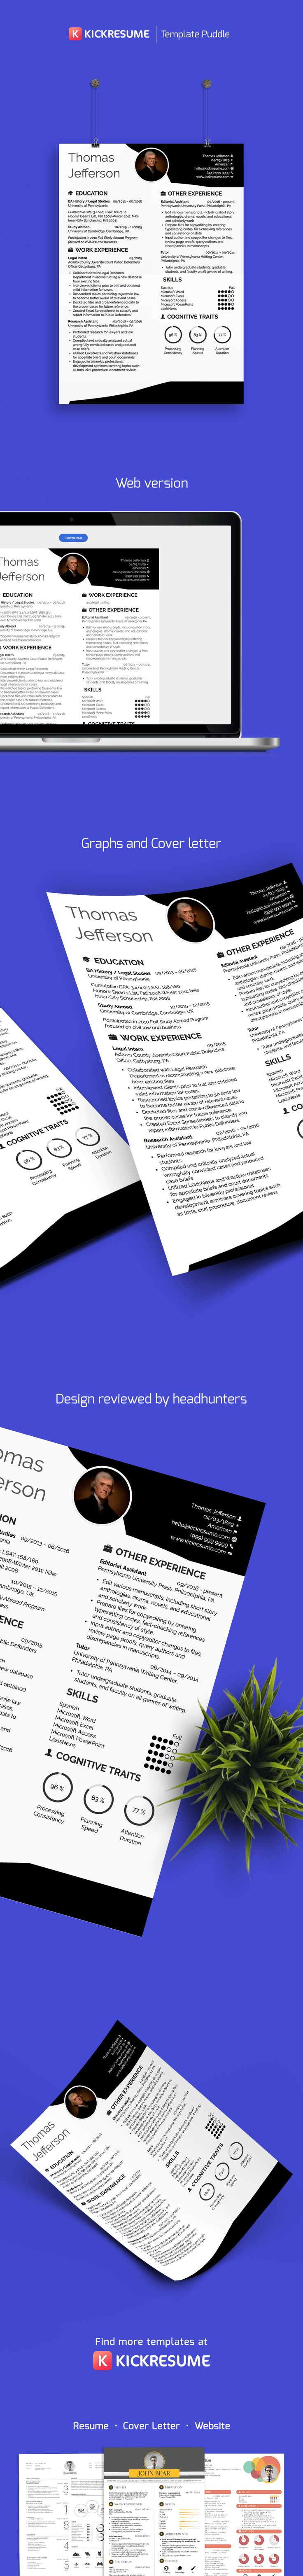 Perfect resume template and cover letter template